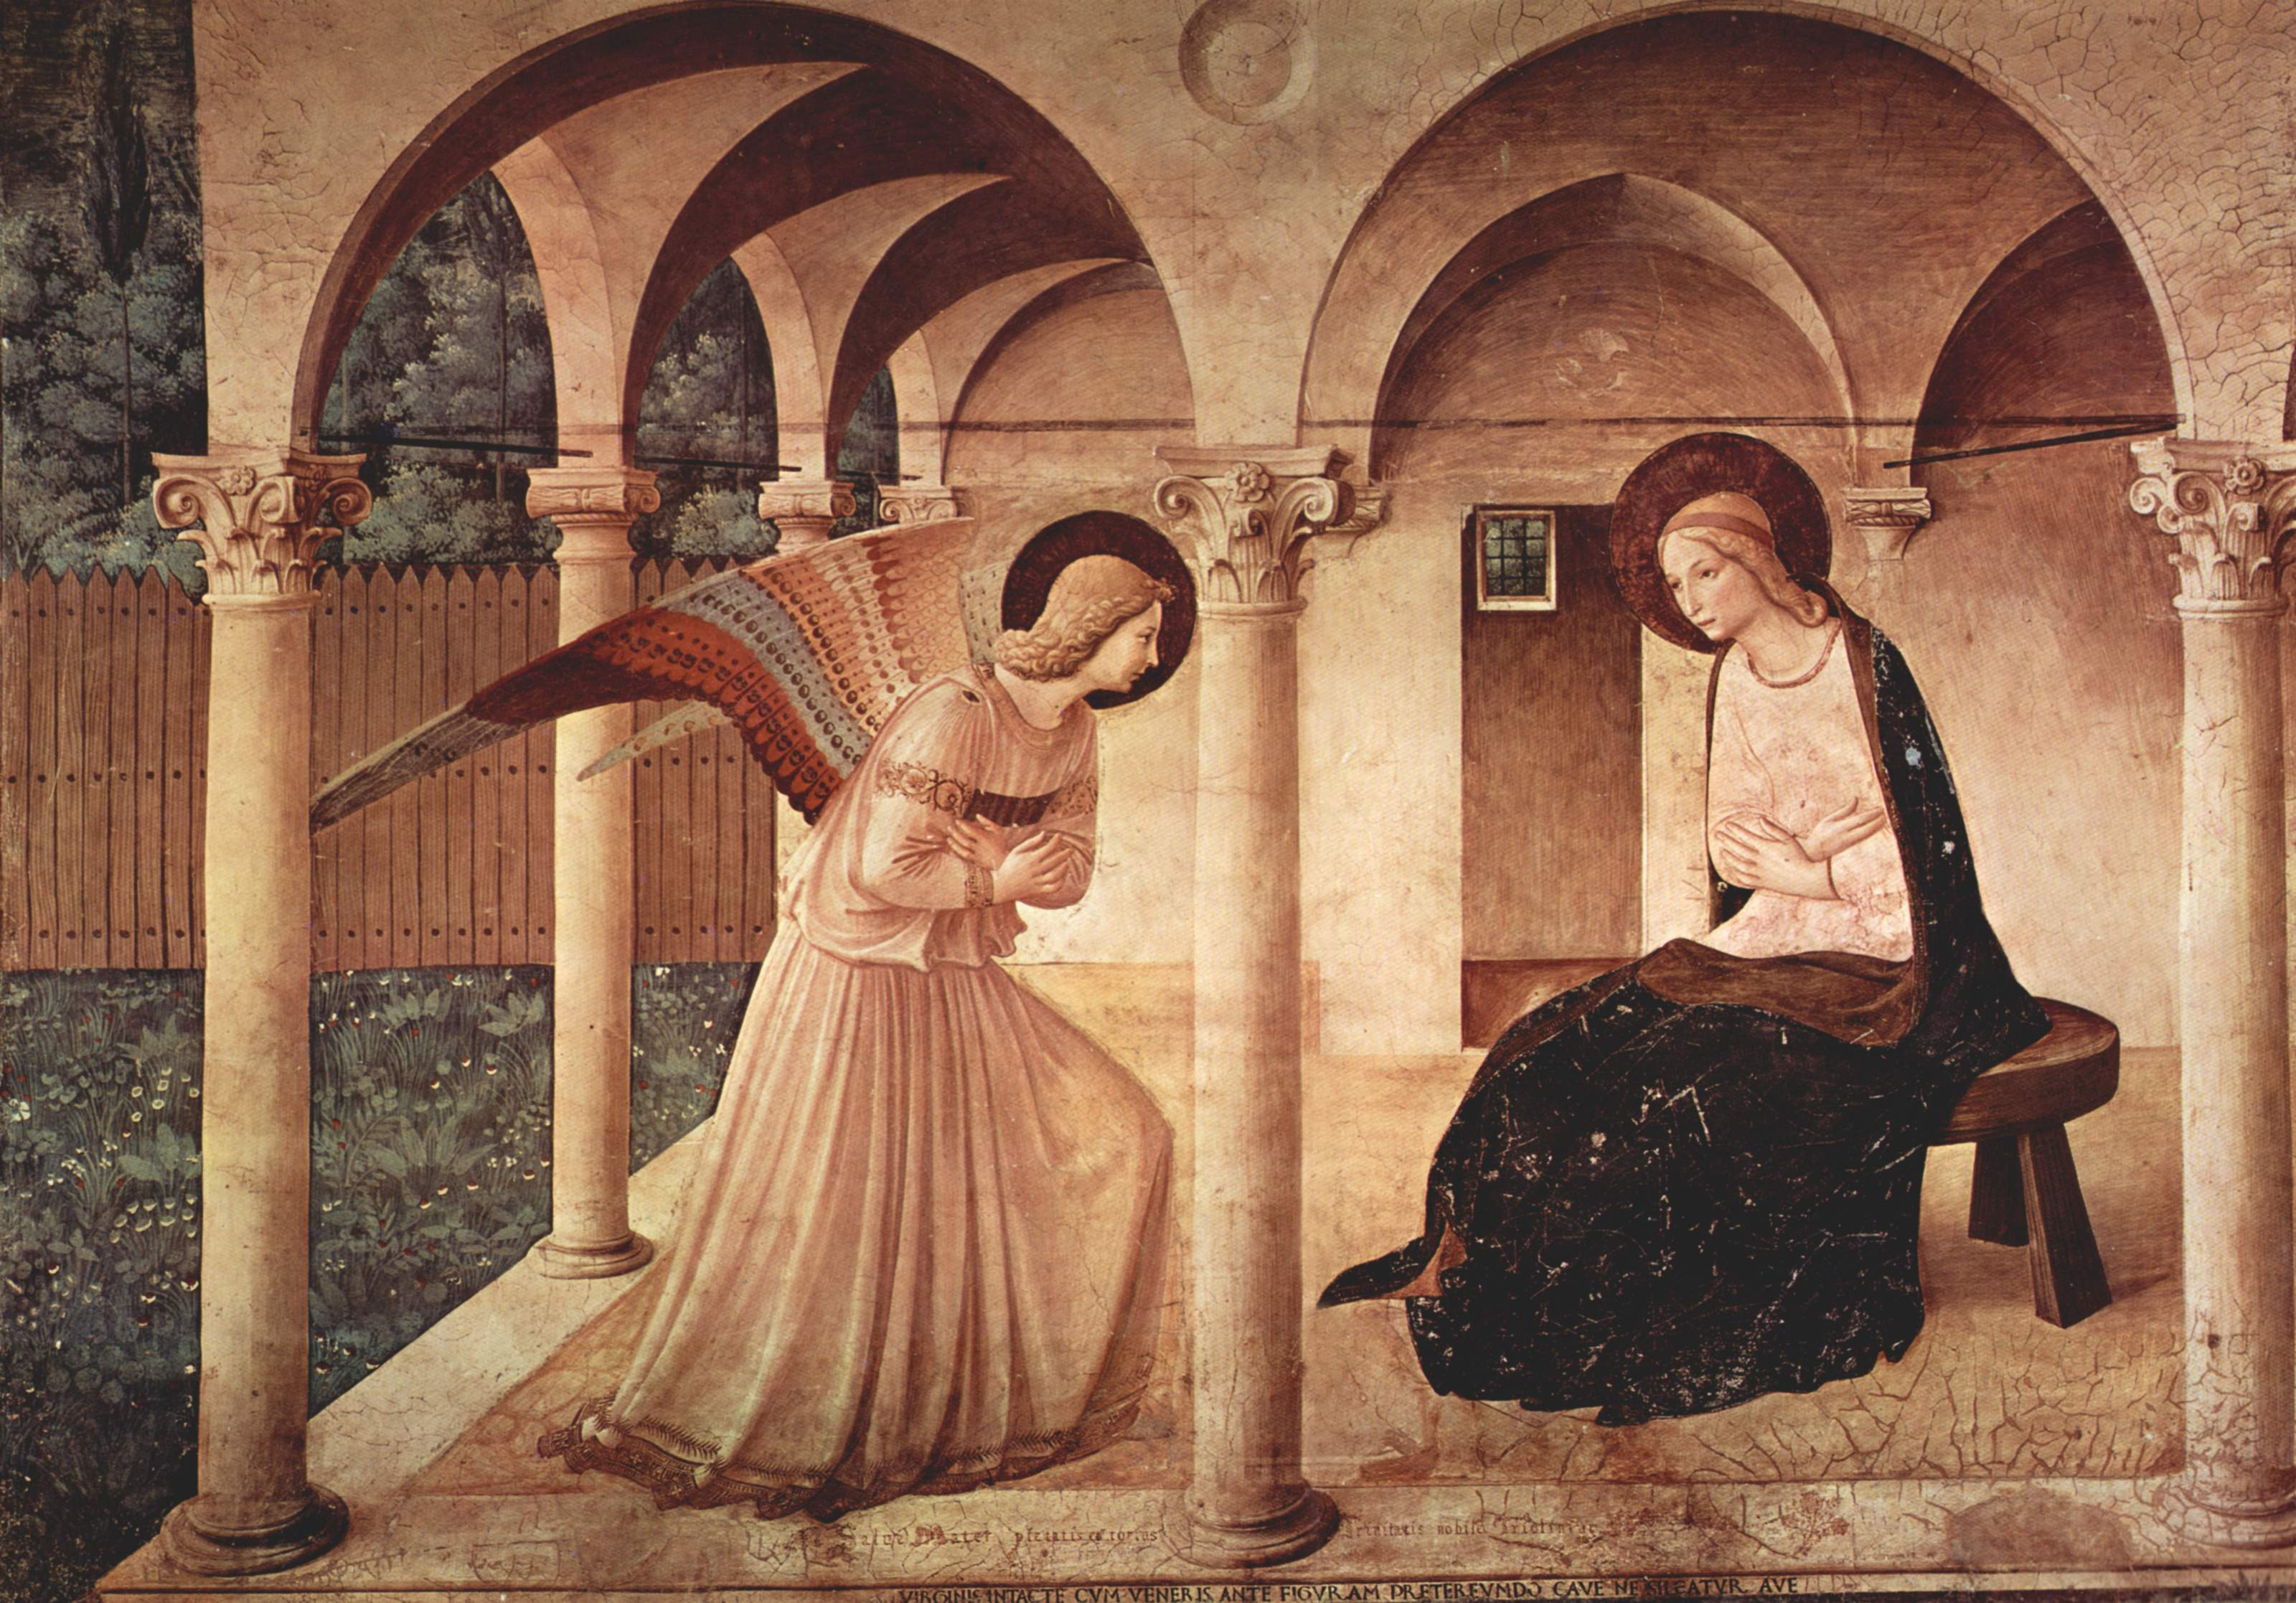 Fra Angelico, Annunciation, ca. 1440